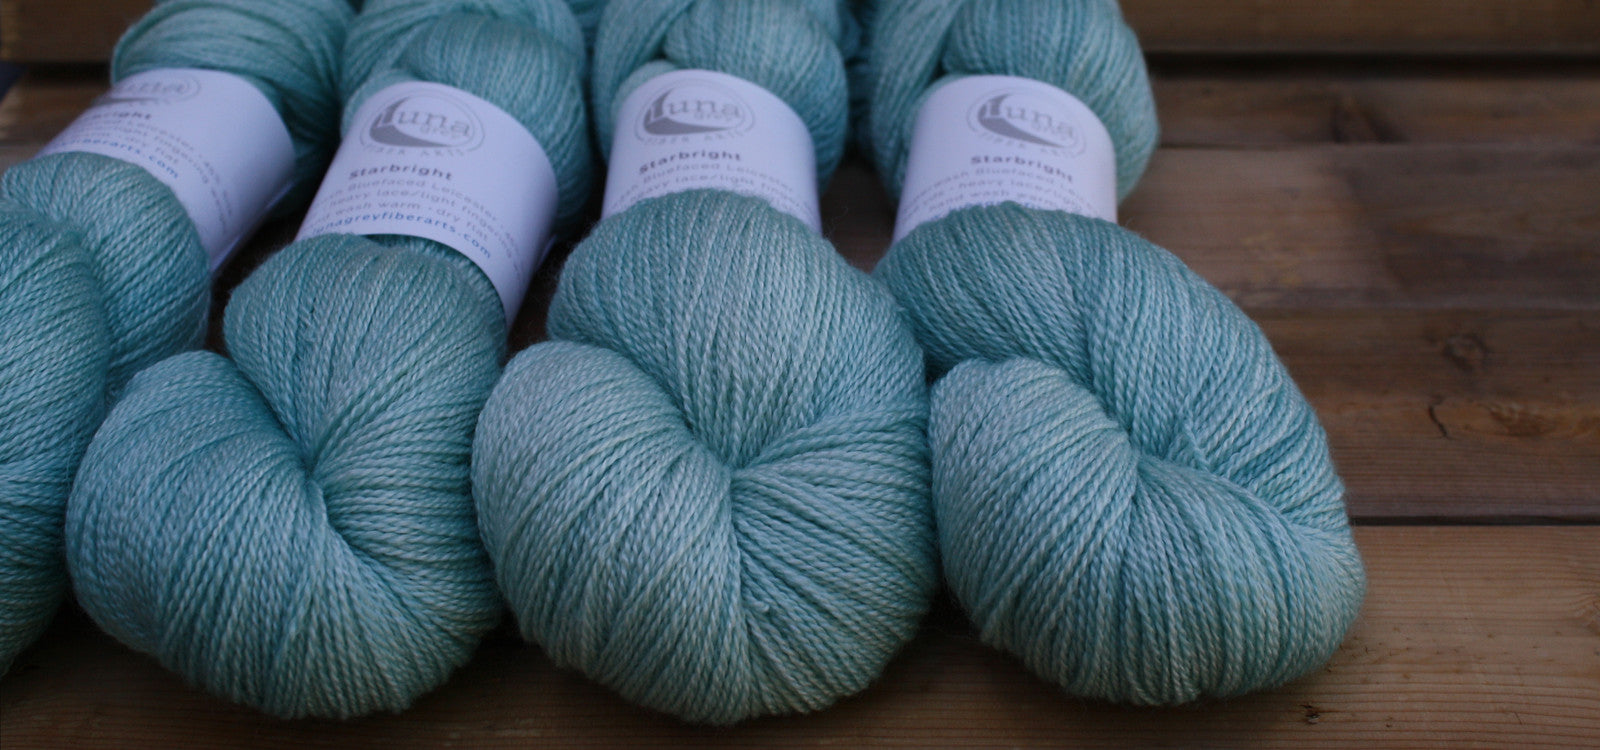 Starbright Yarn | Colorway: Araucana